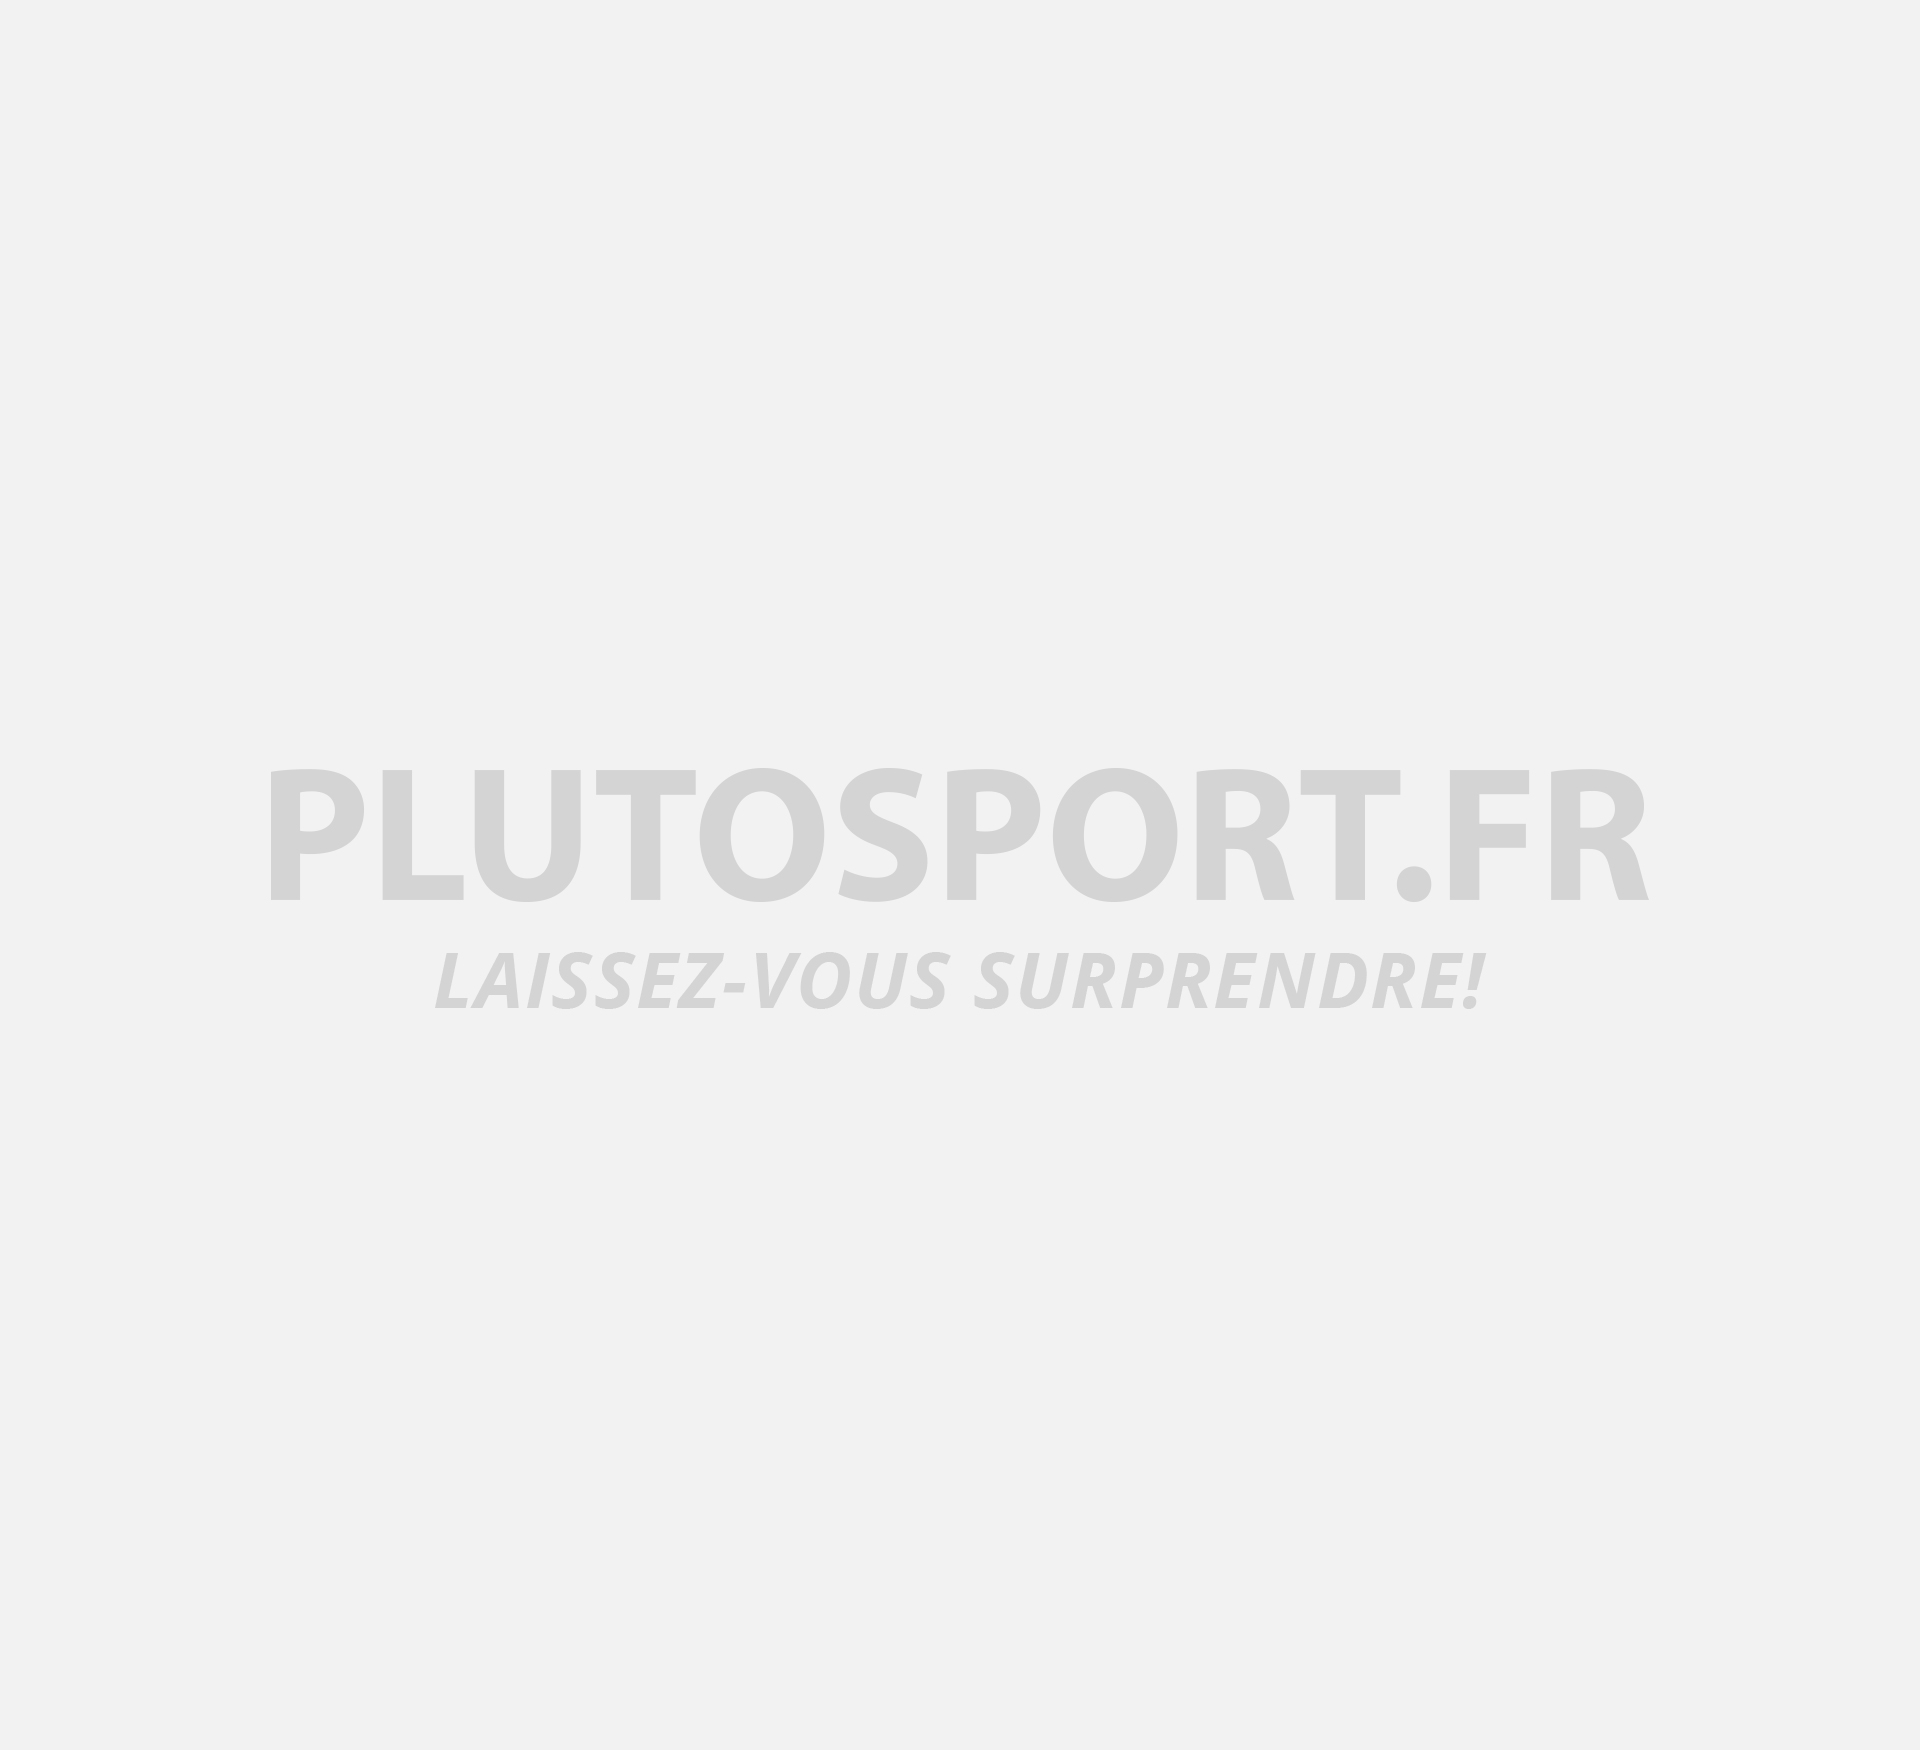 Color Kids Eark Beach Shorts